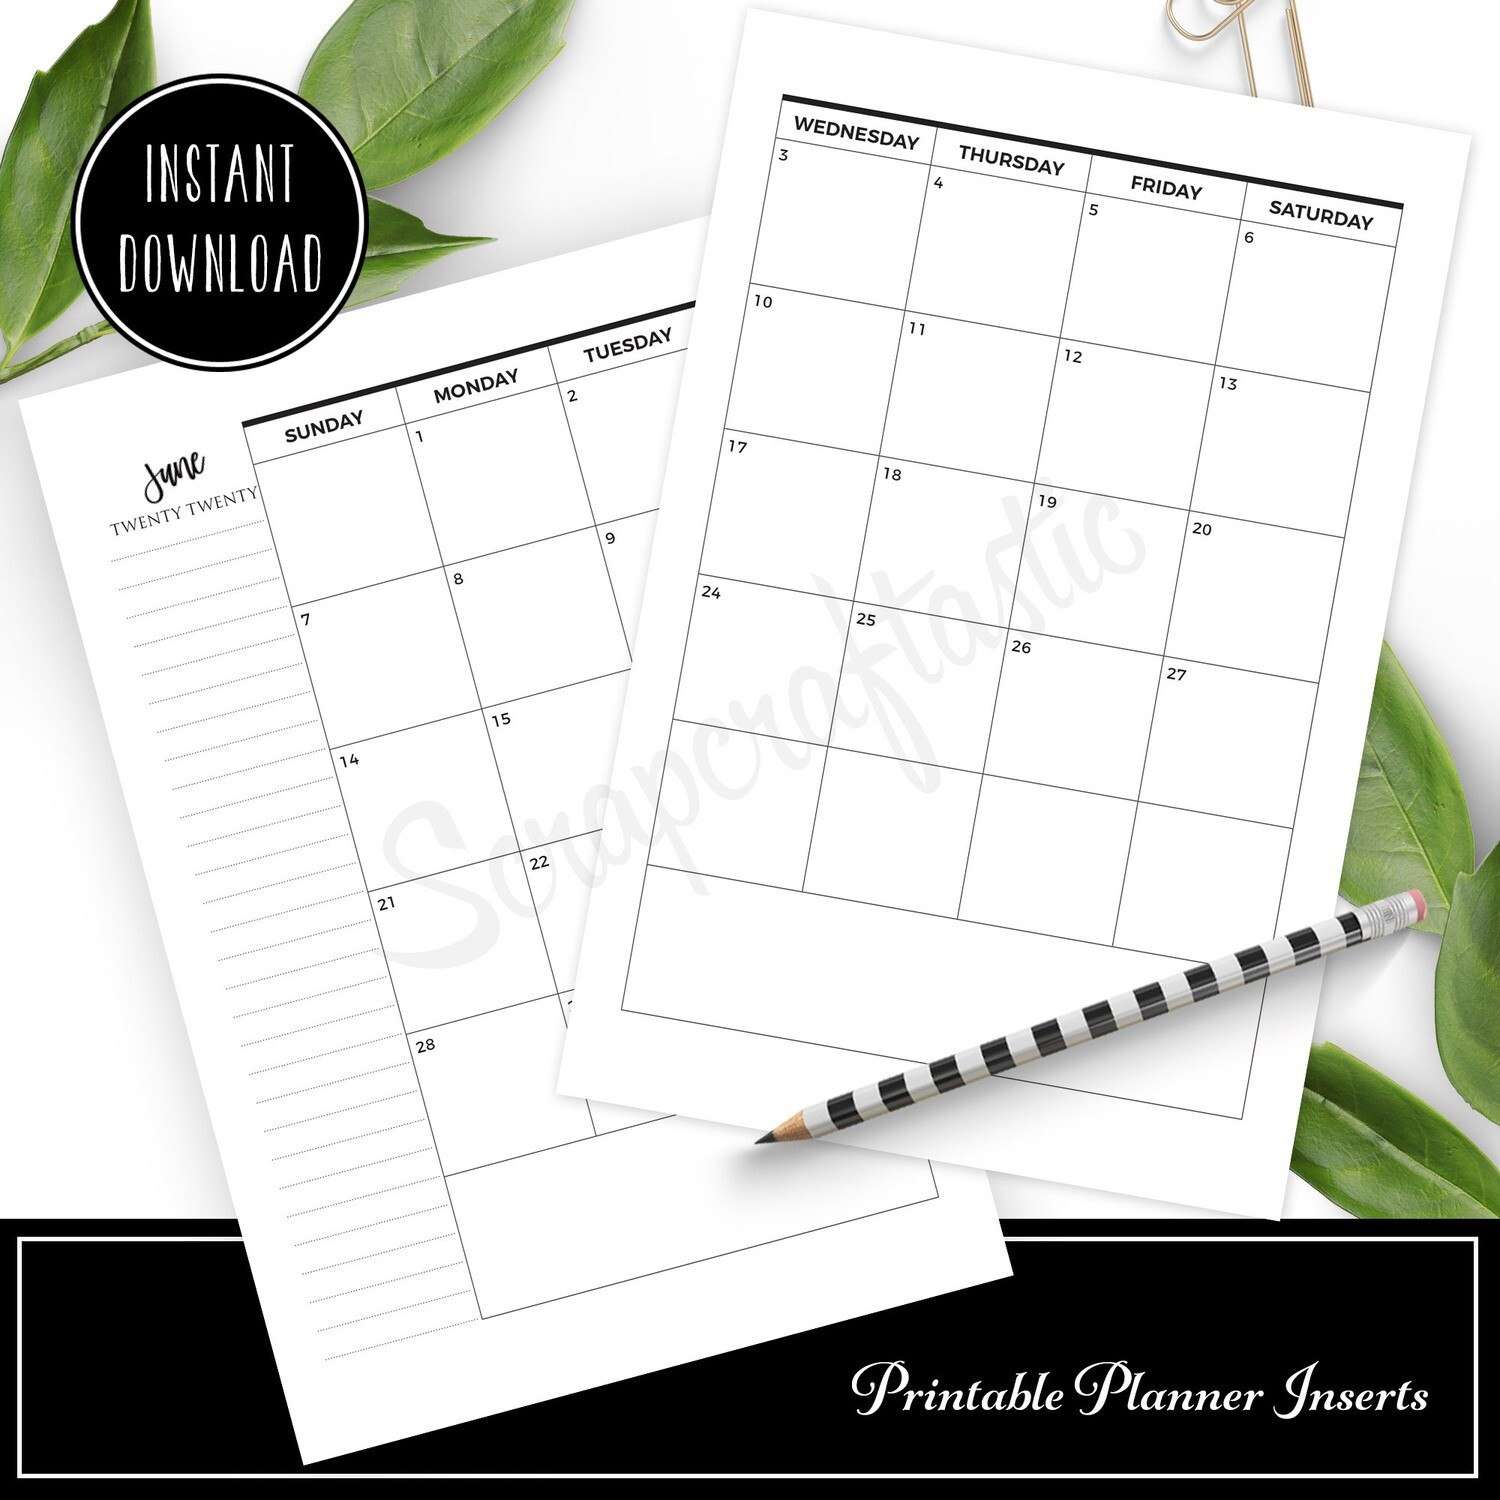 PERSONAL WIDE - 2020 Dated Monthly Calendar Printable Planner Inserts